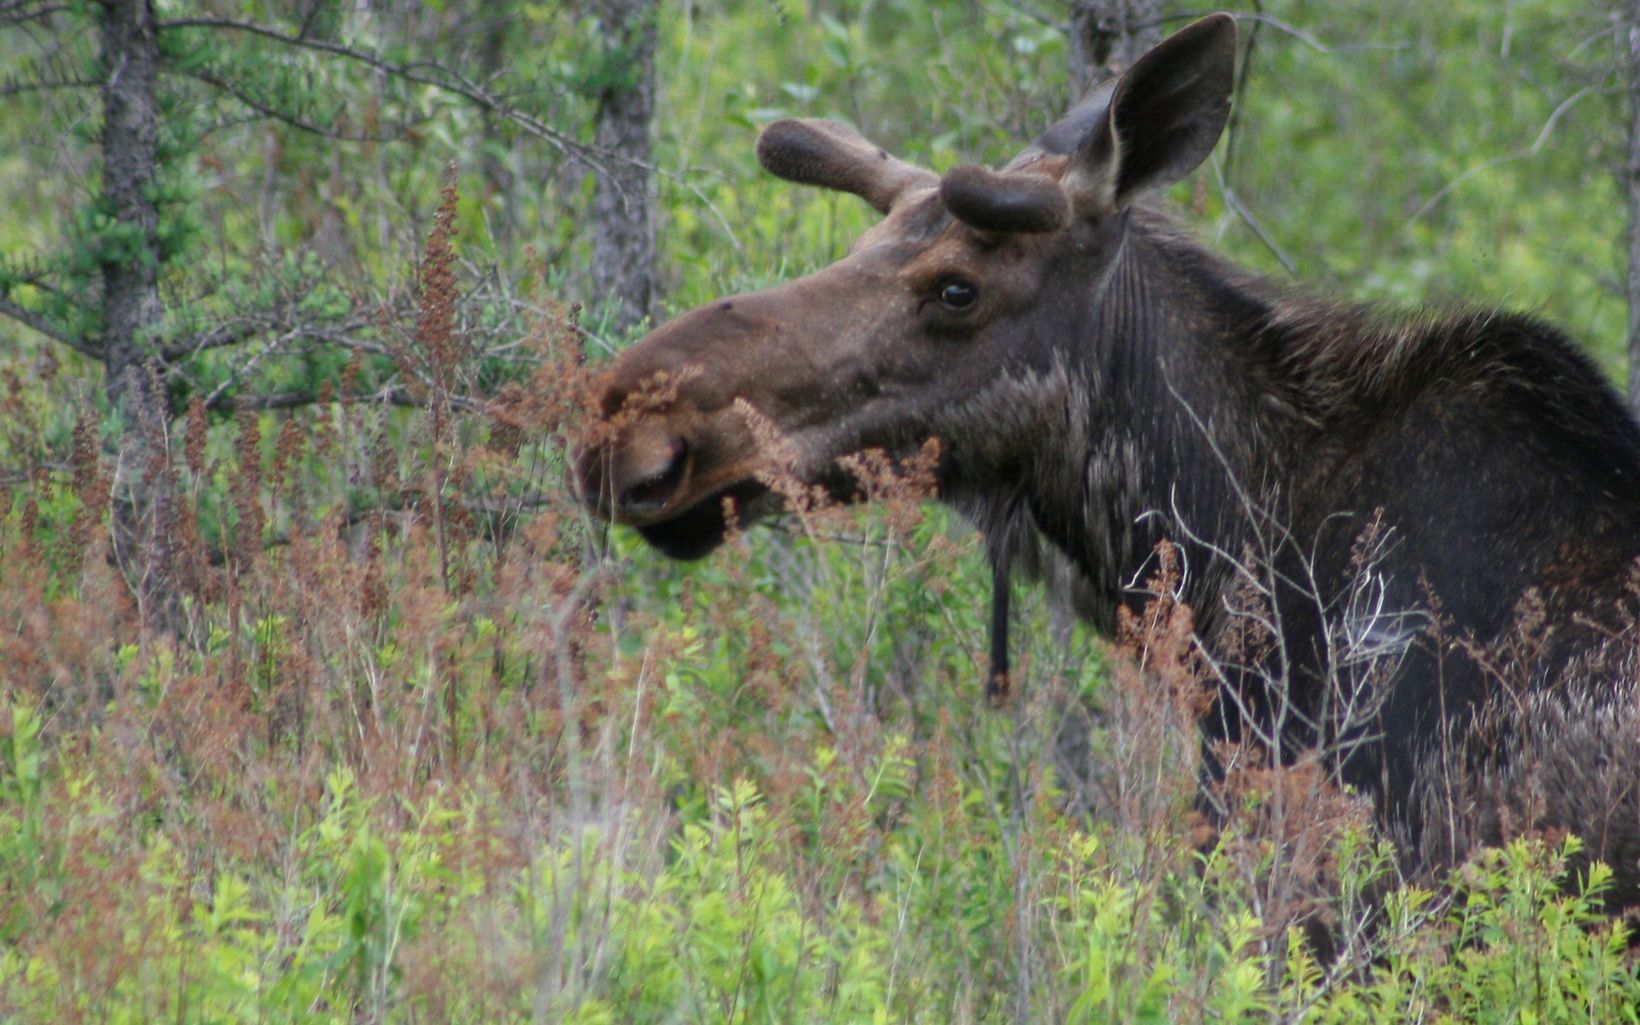 A brown moose forages in the brush of a forest.